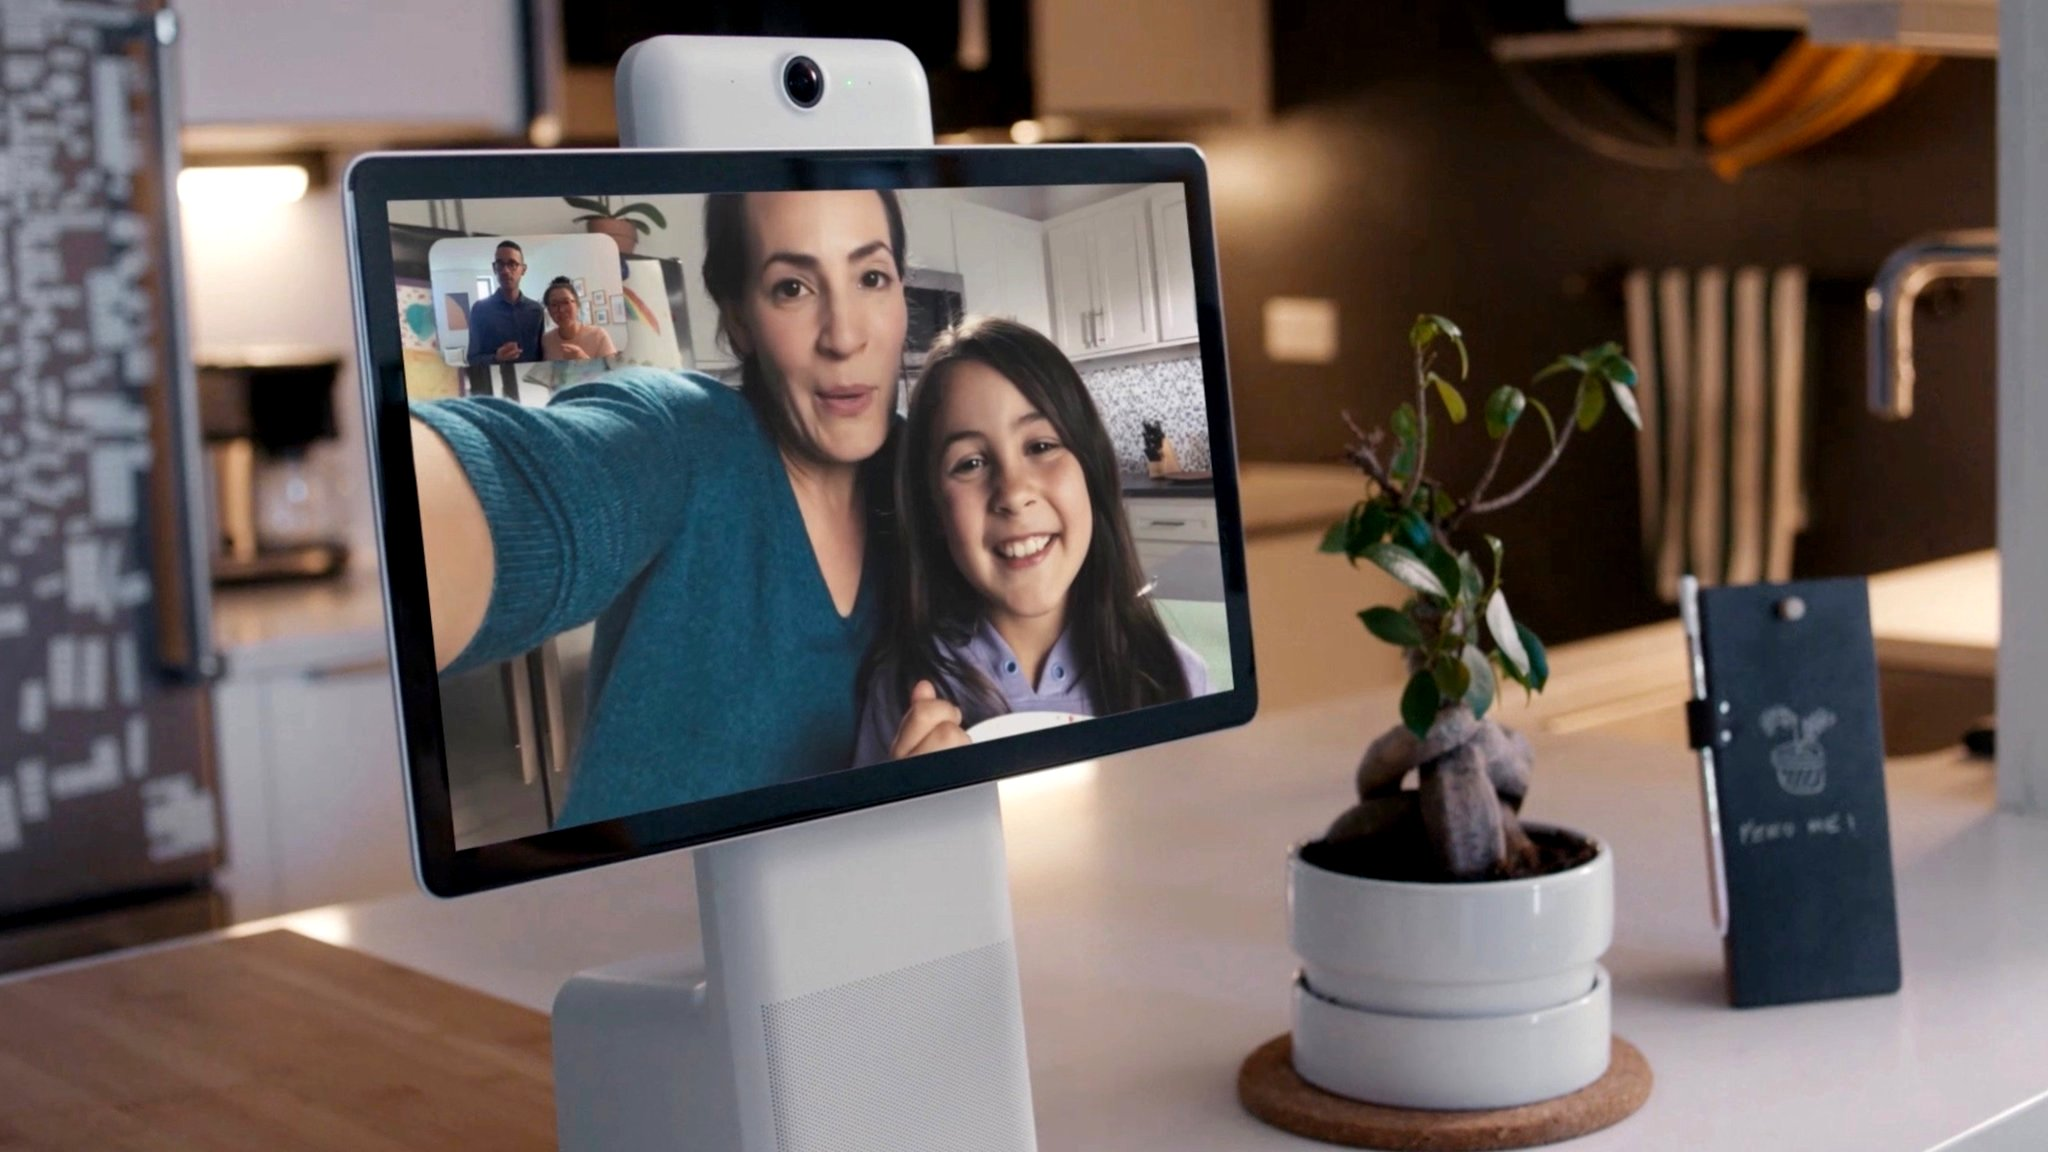 Facebook Portal video chat screens raise privacy concerns